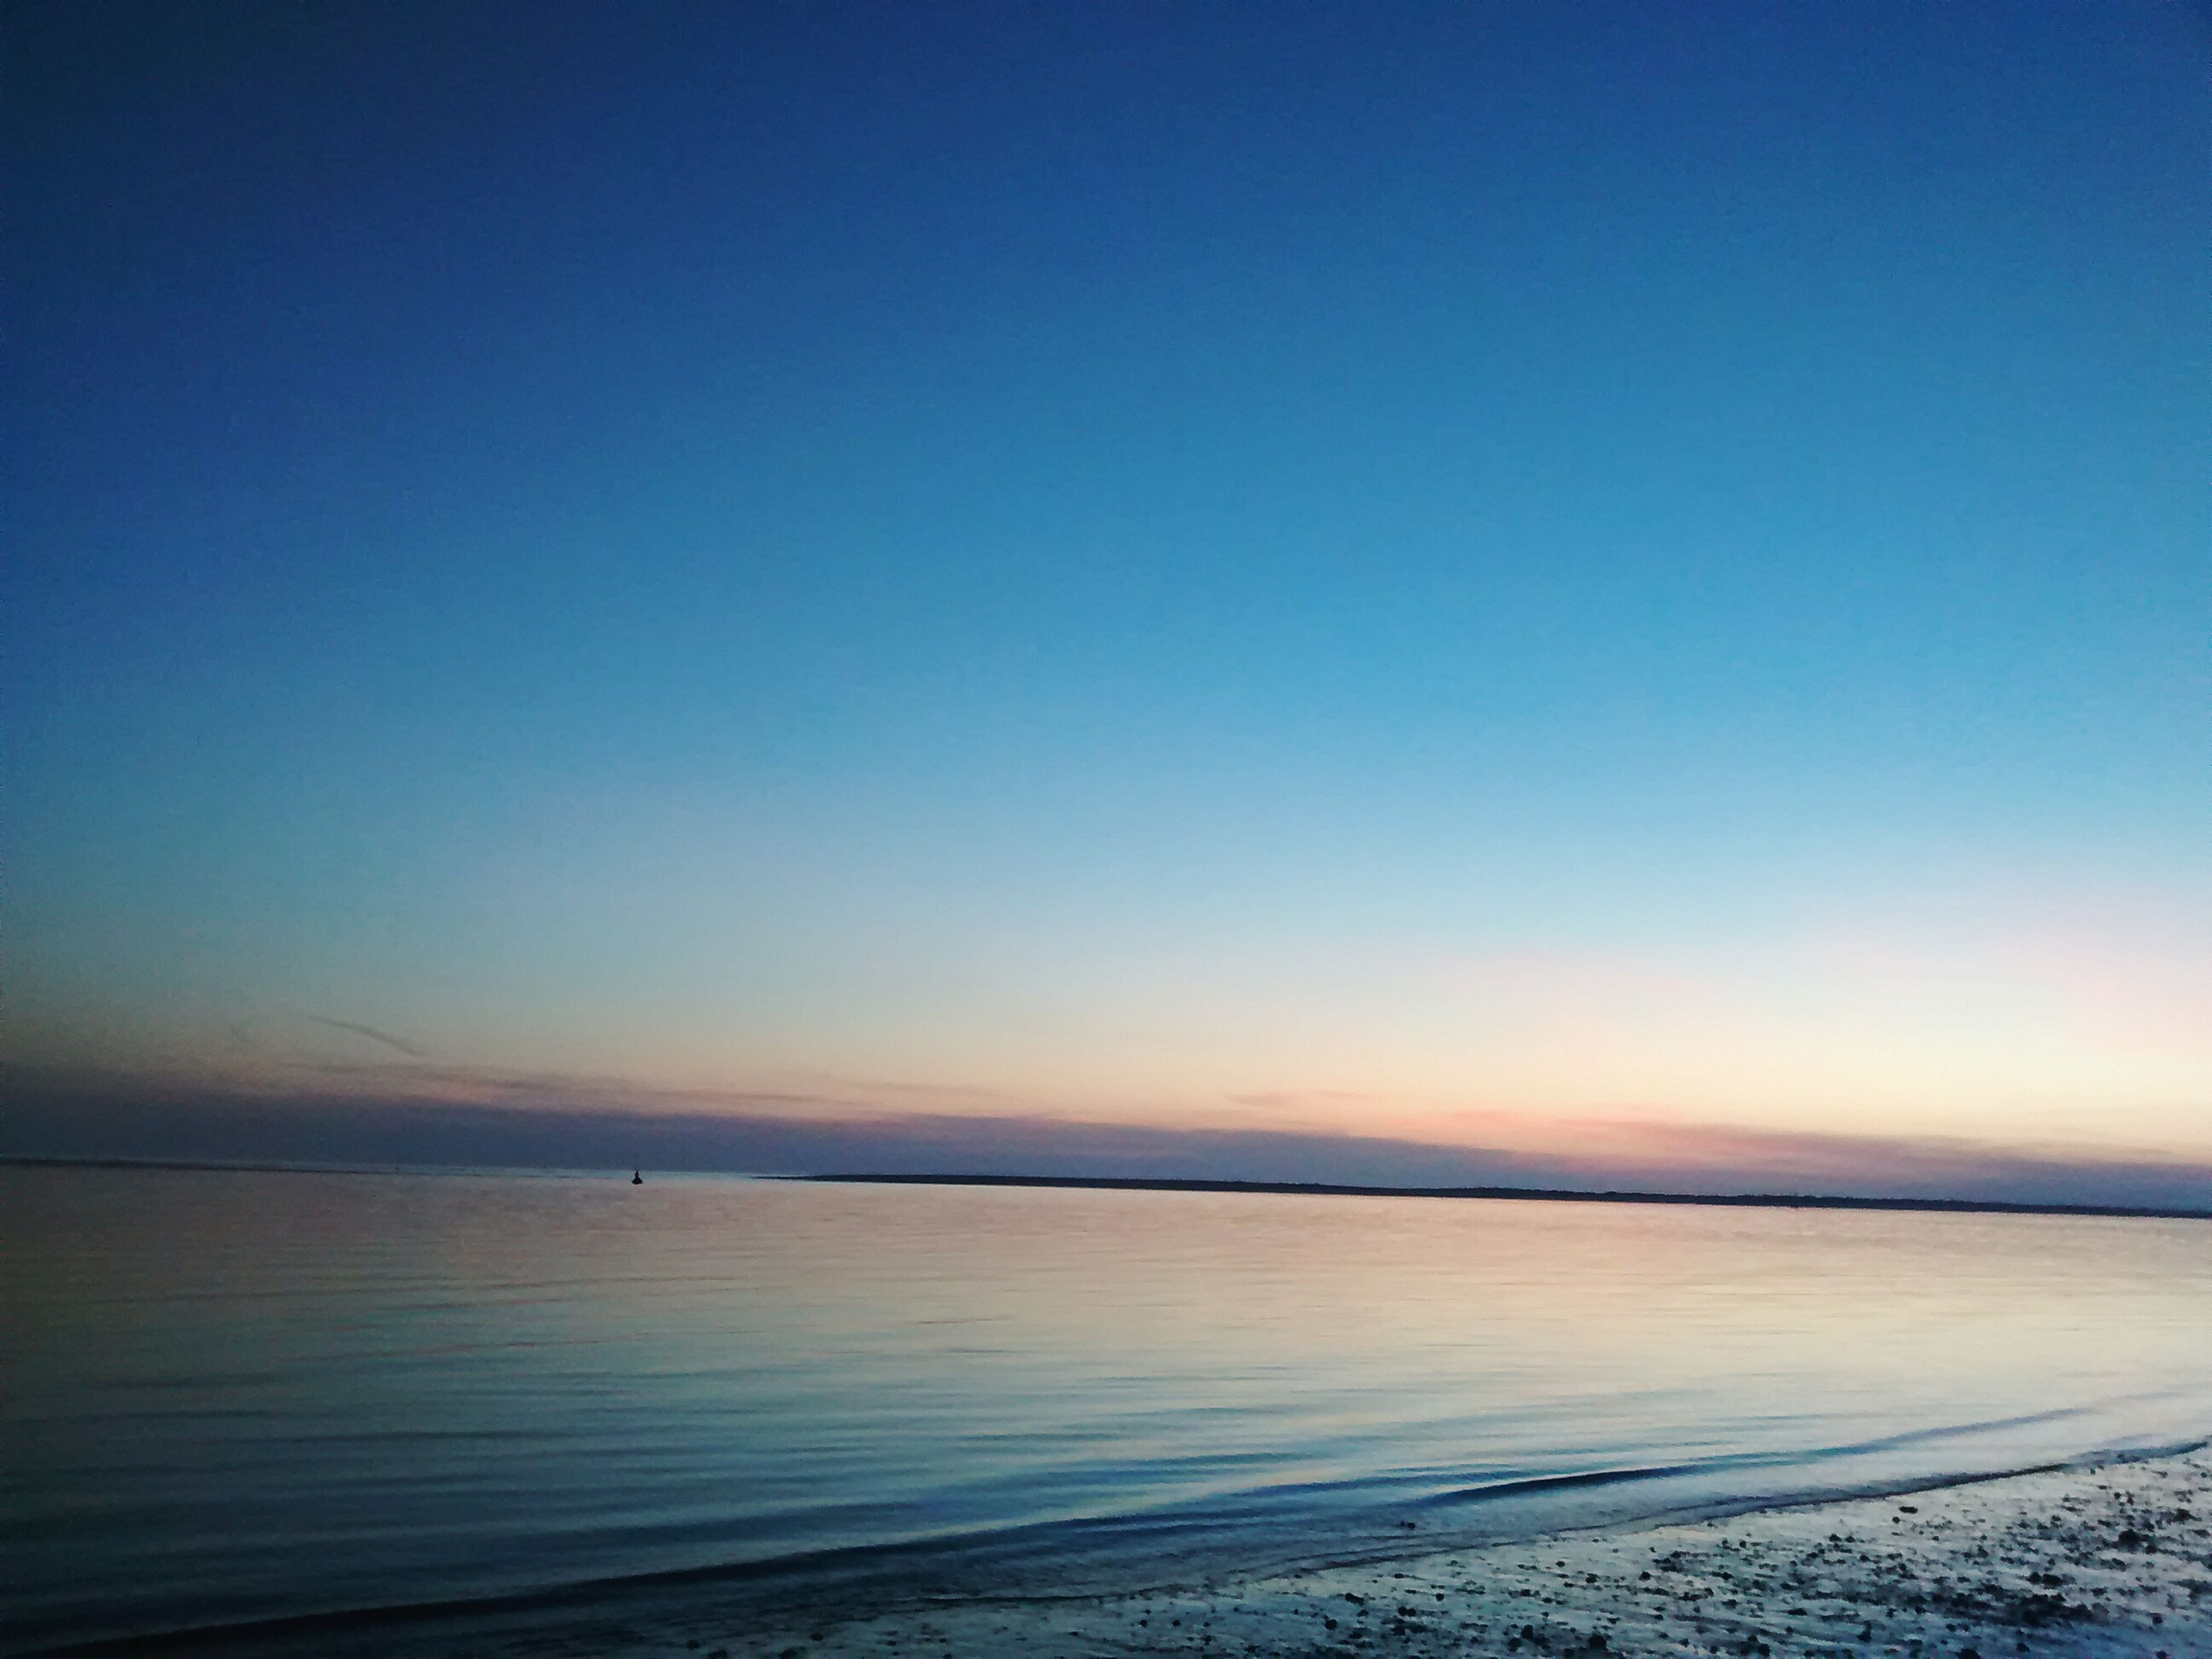 sea, tranquil scene, water, tranquility, scenics, beach, horizon over water, beauty in nature, copy space, nature, shore, blue, sunset, sand, sky, idyllic, clear sky, dusk, remote, non-urban scene